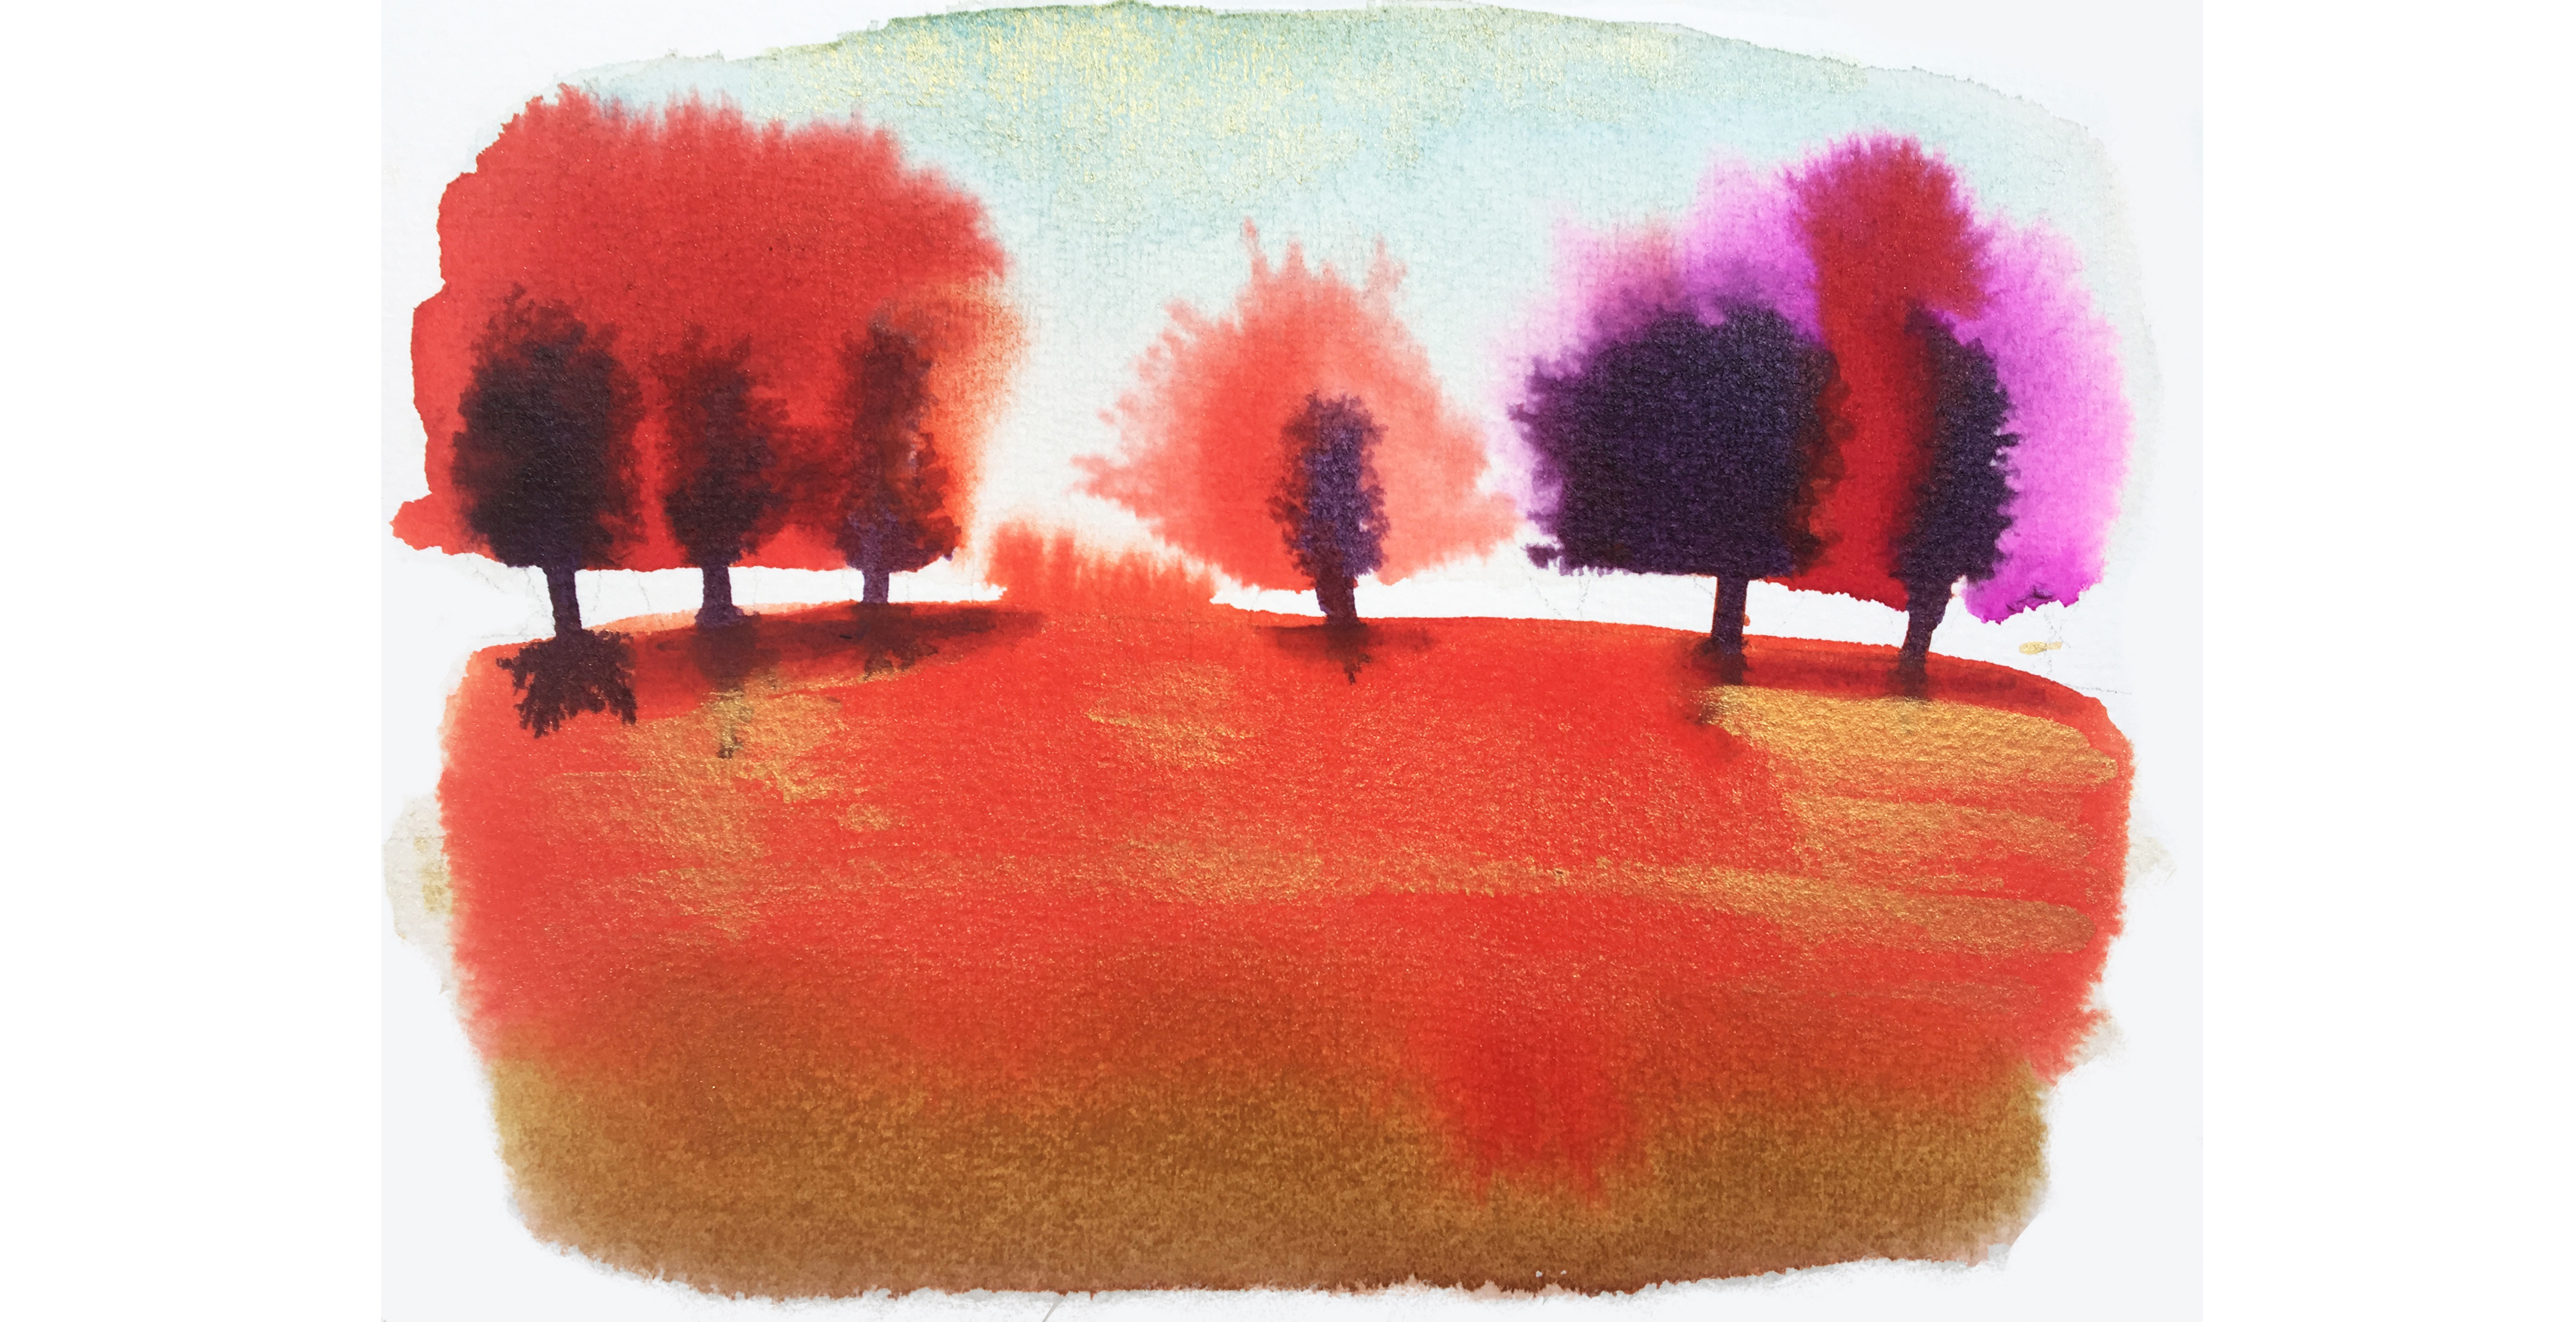 Watercolor ink illustration, landscape and trees